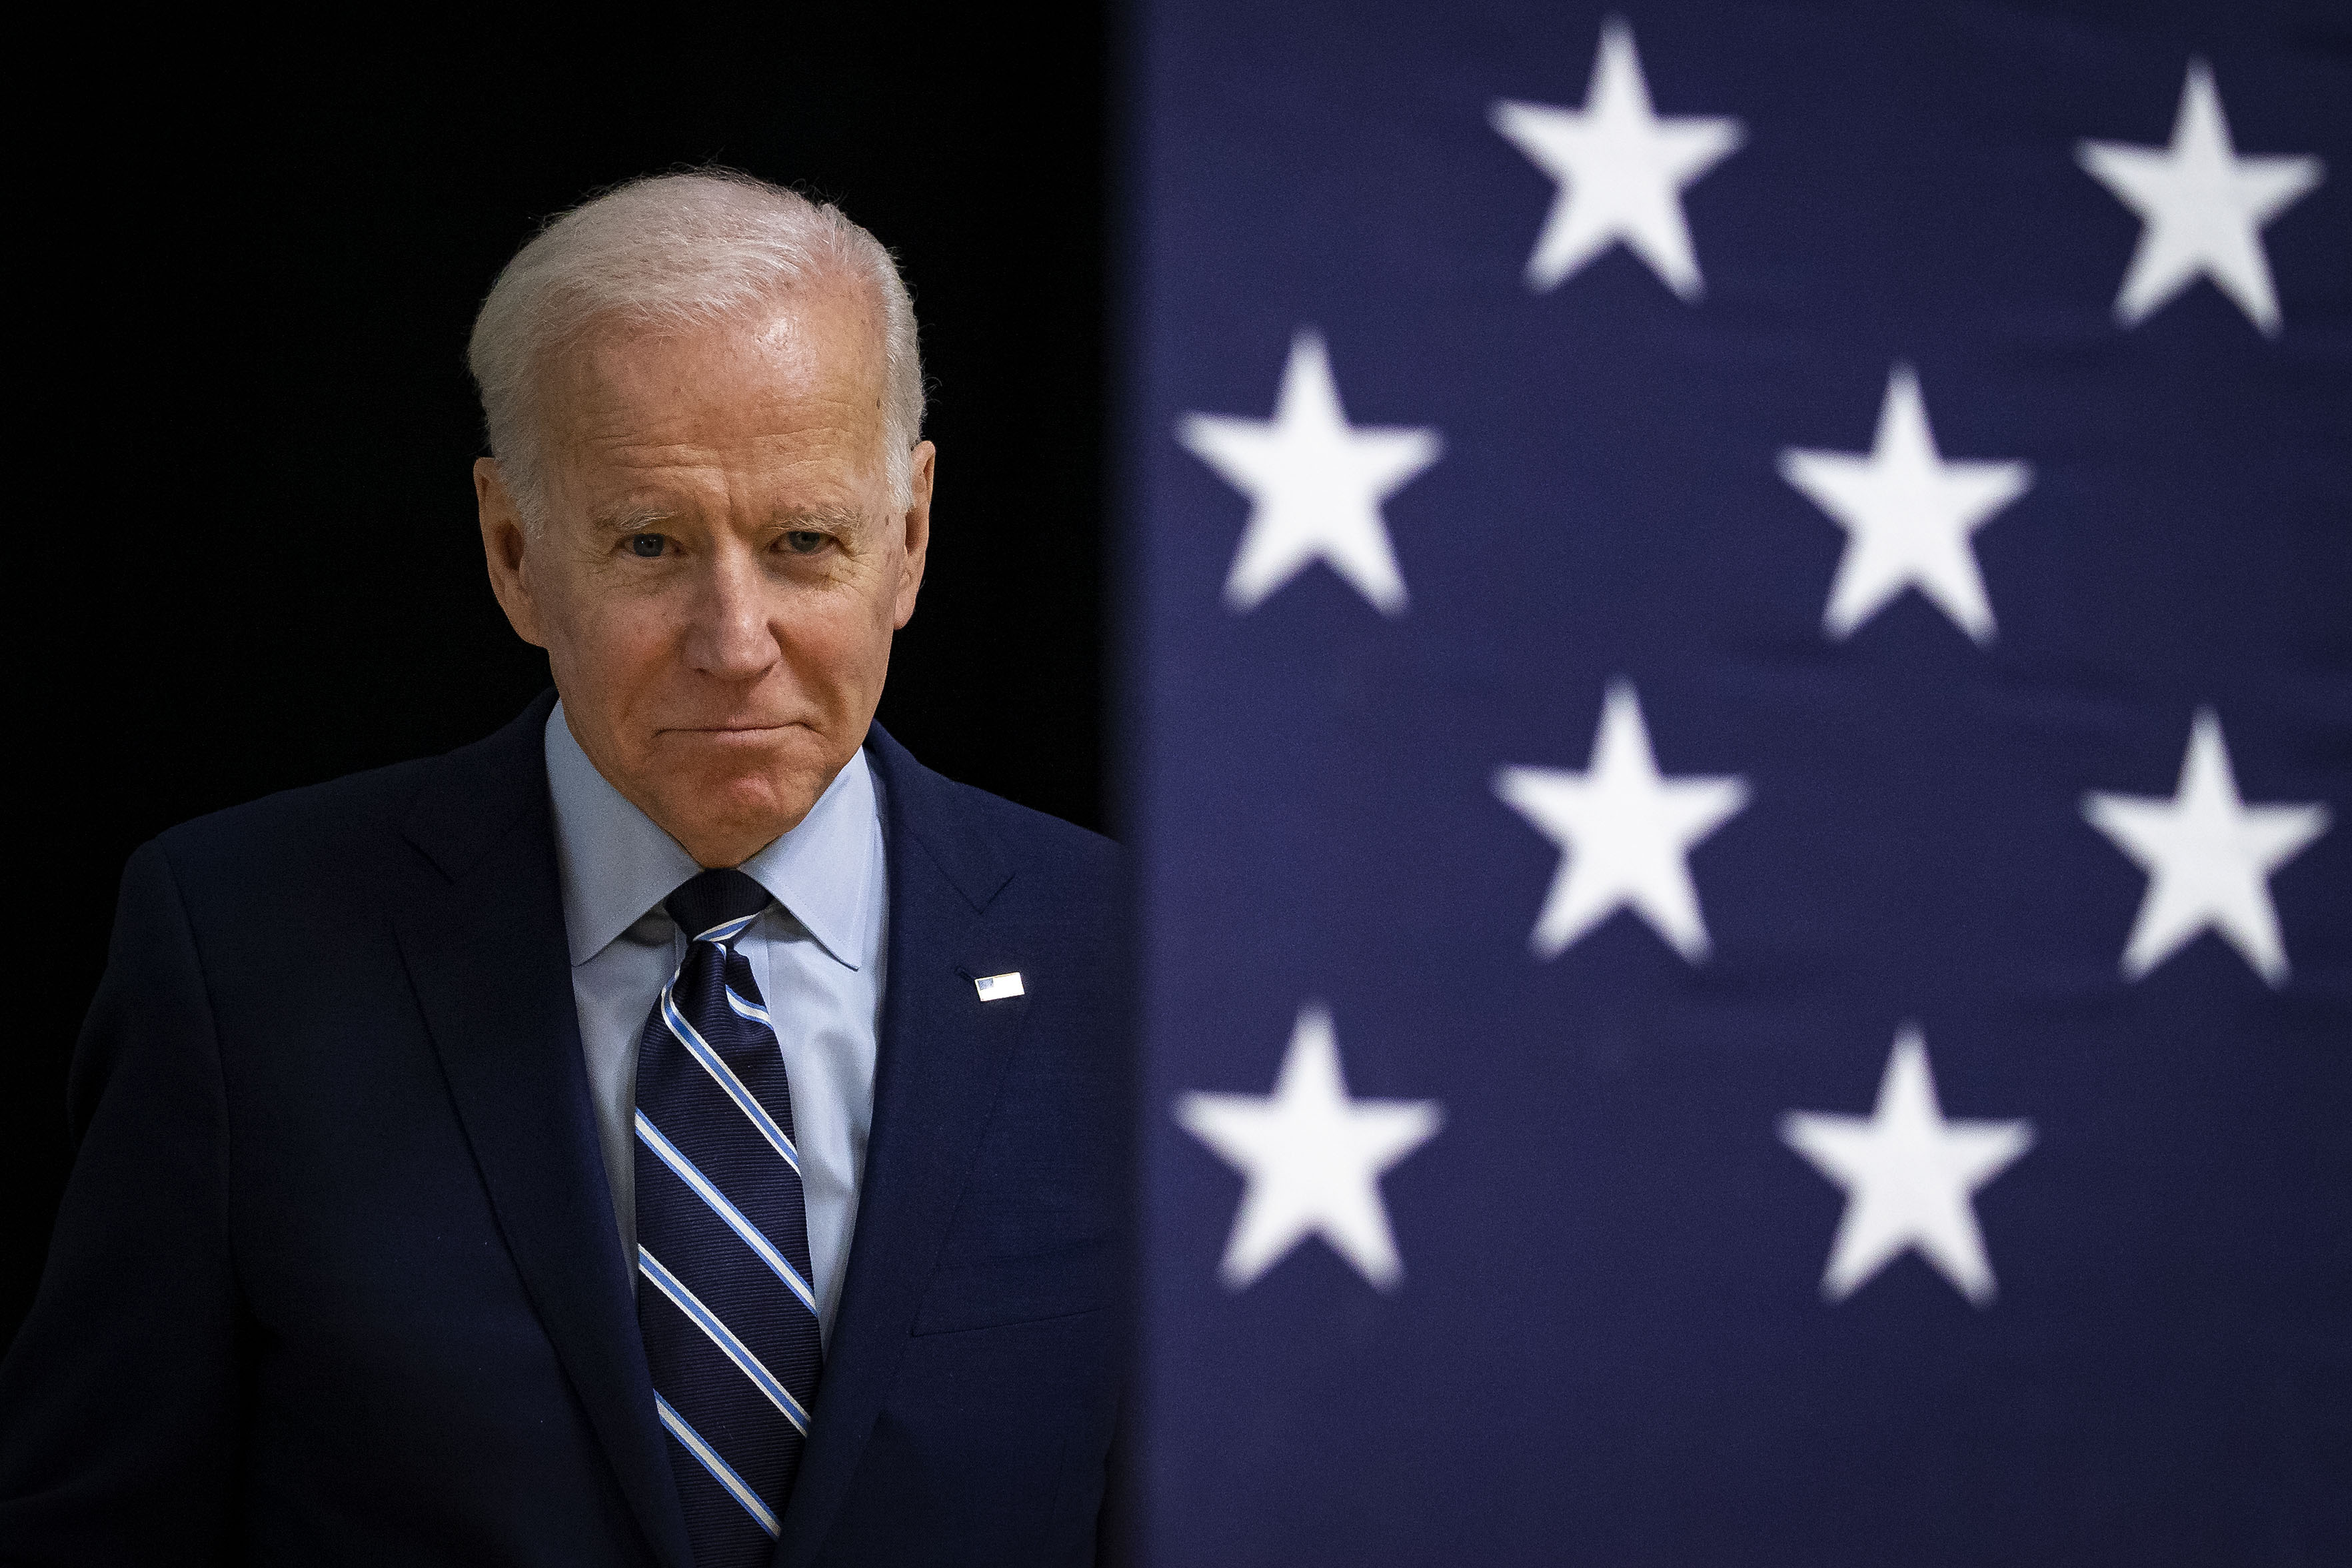 'Doesn't add a single penny': Fact-checking Biden's deficit claims